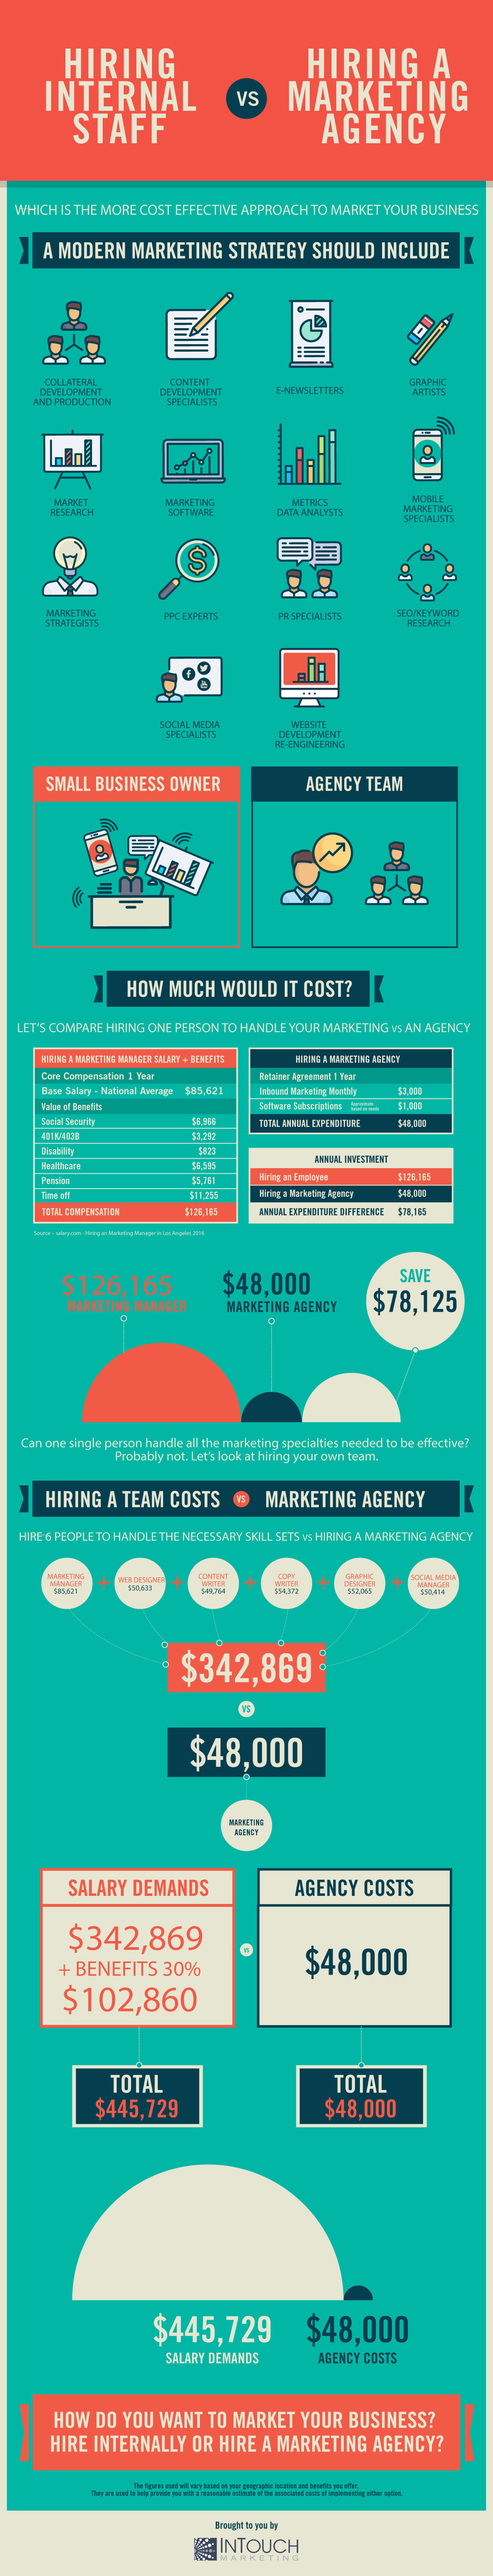 Hiring-A-Marketing-Firm-vs-Hiring-Internal-Staff-Infographic